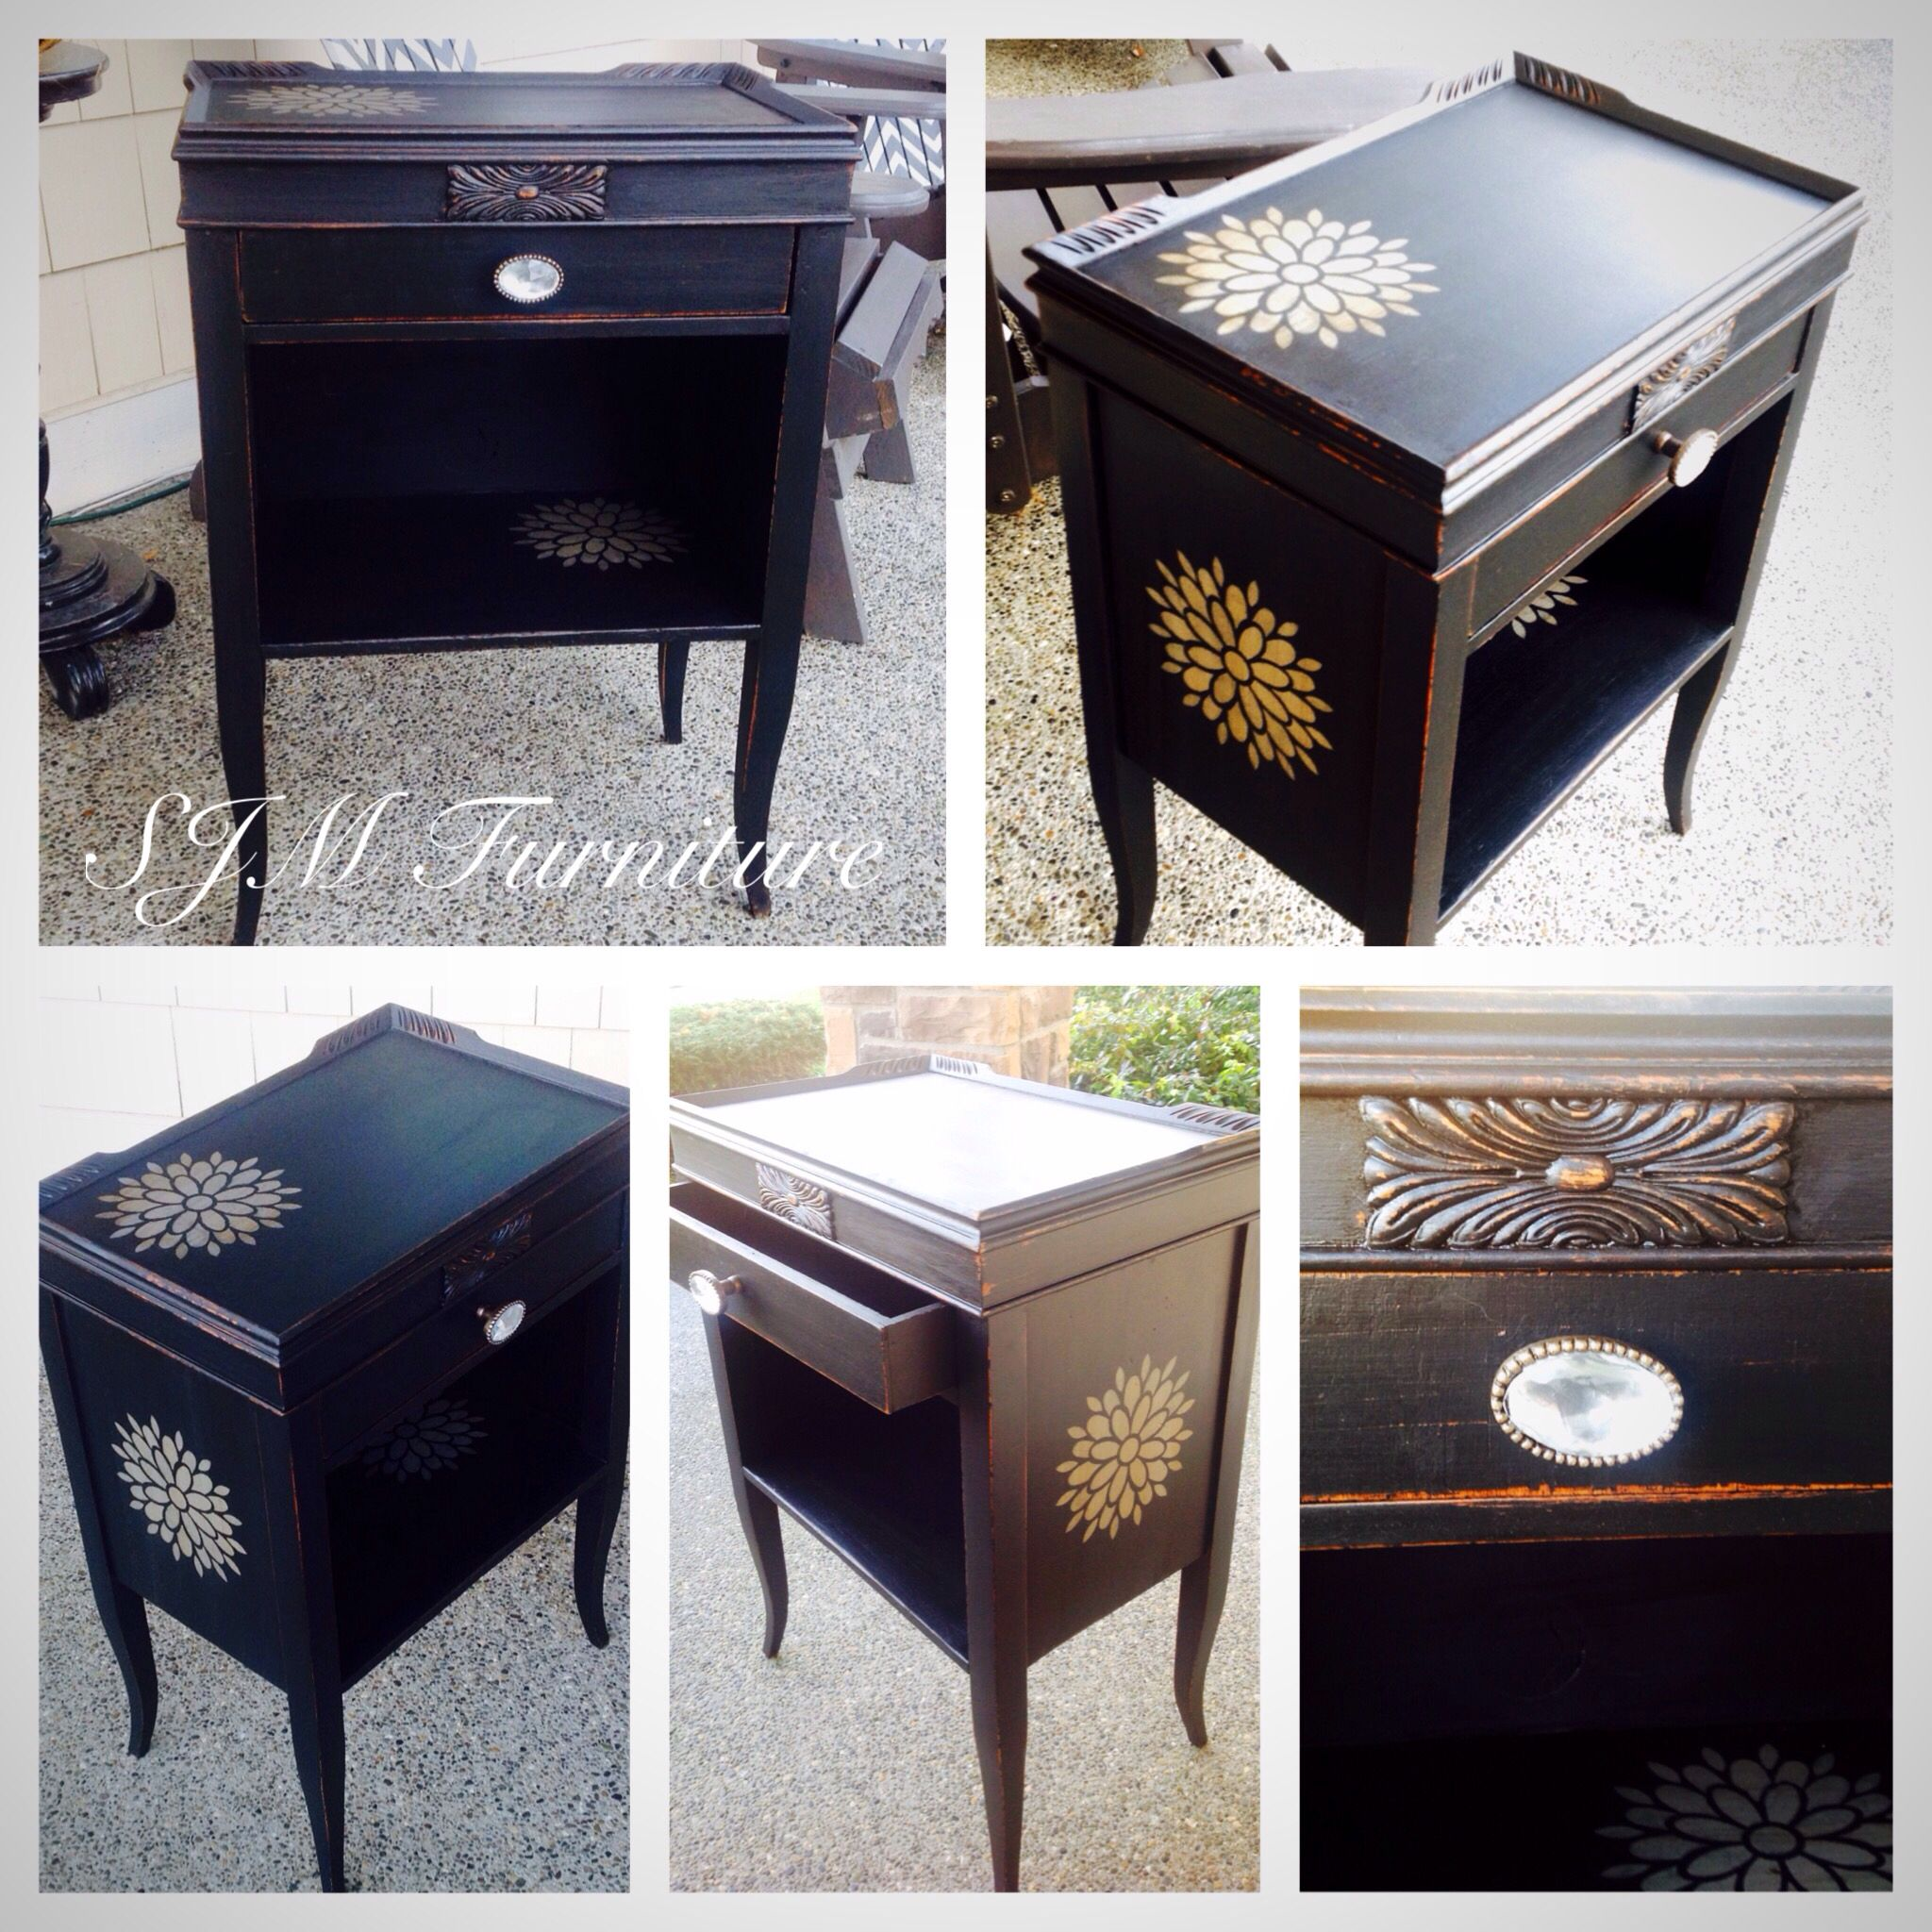 Antique Side Table Painted In Black Chalk Paint Distressed And Antiqued In Dark Wax By Sjm Furniture Redo Furniture Refinishing Furniture Furniture Makeover